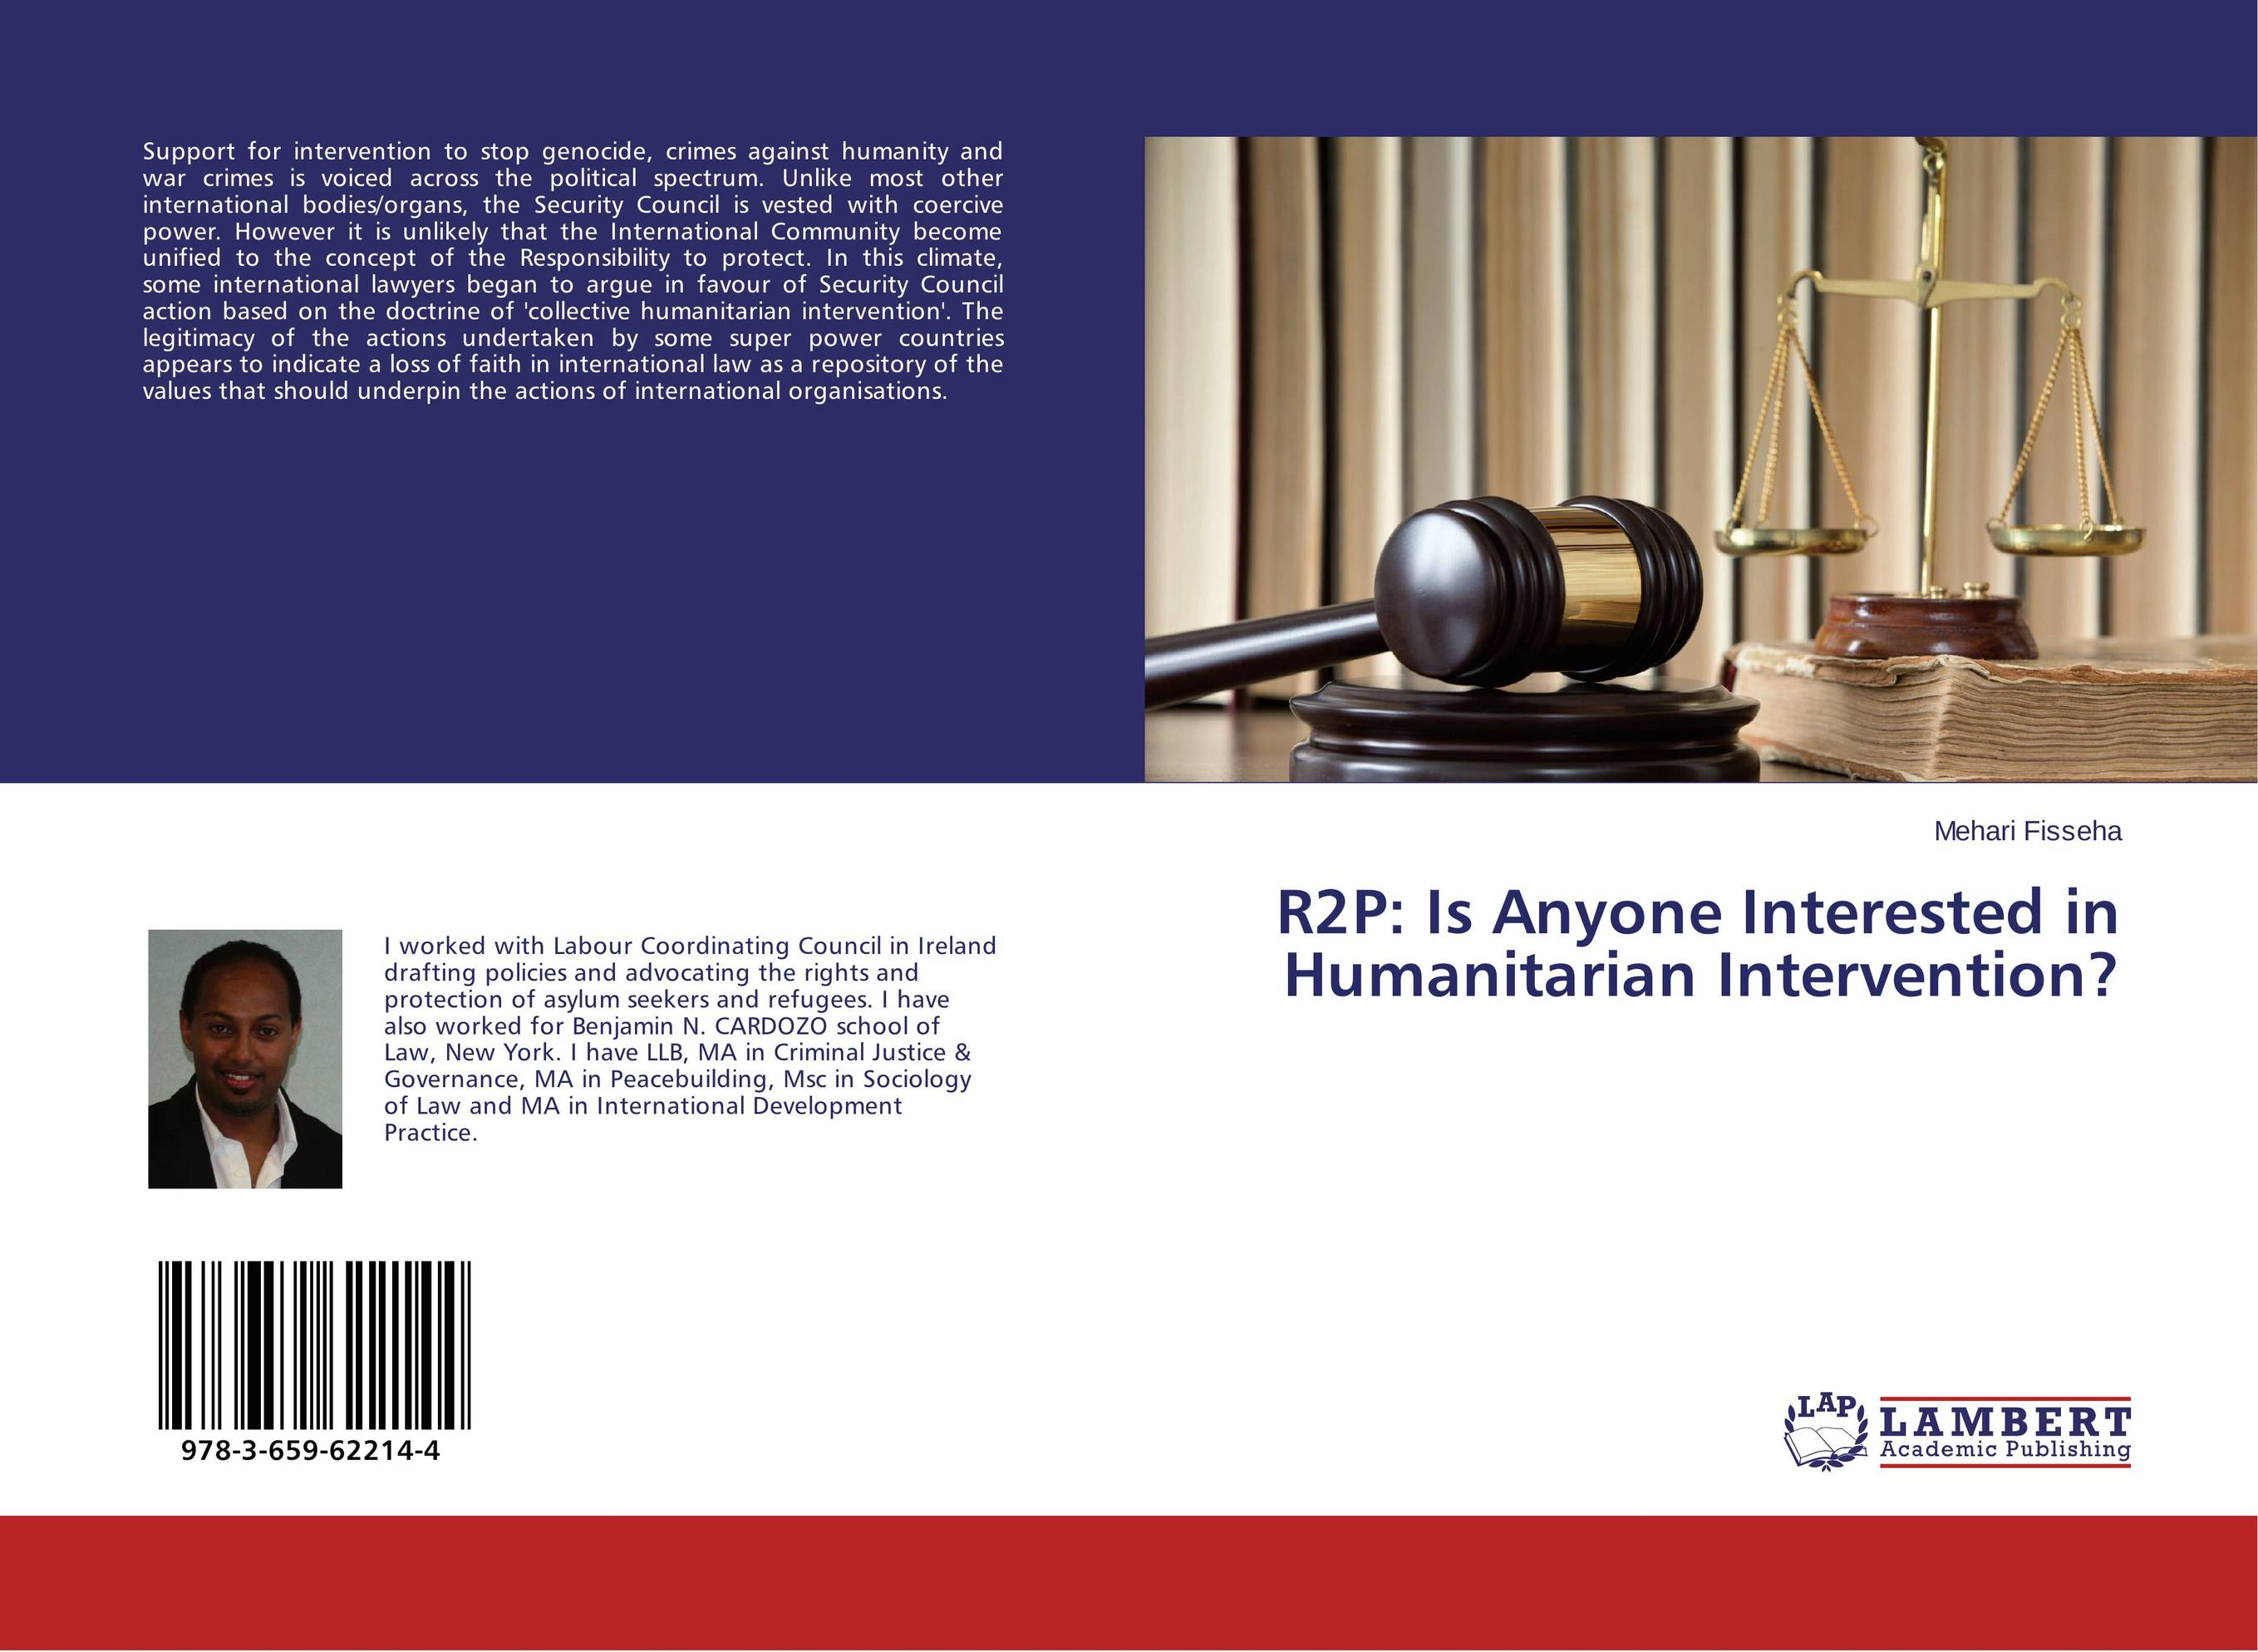 humanitarian intervention nato and international law The subject of humanitarian intervention has remained a compelling foreign policy issue, especially since nato's intervention in kosovo in 1999, as it highlights the tension between the principle of state sovereignty - a defining pillar of the un system and international law - and evolving international.